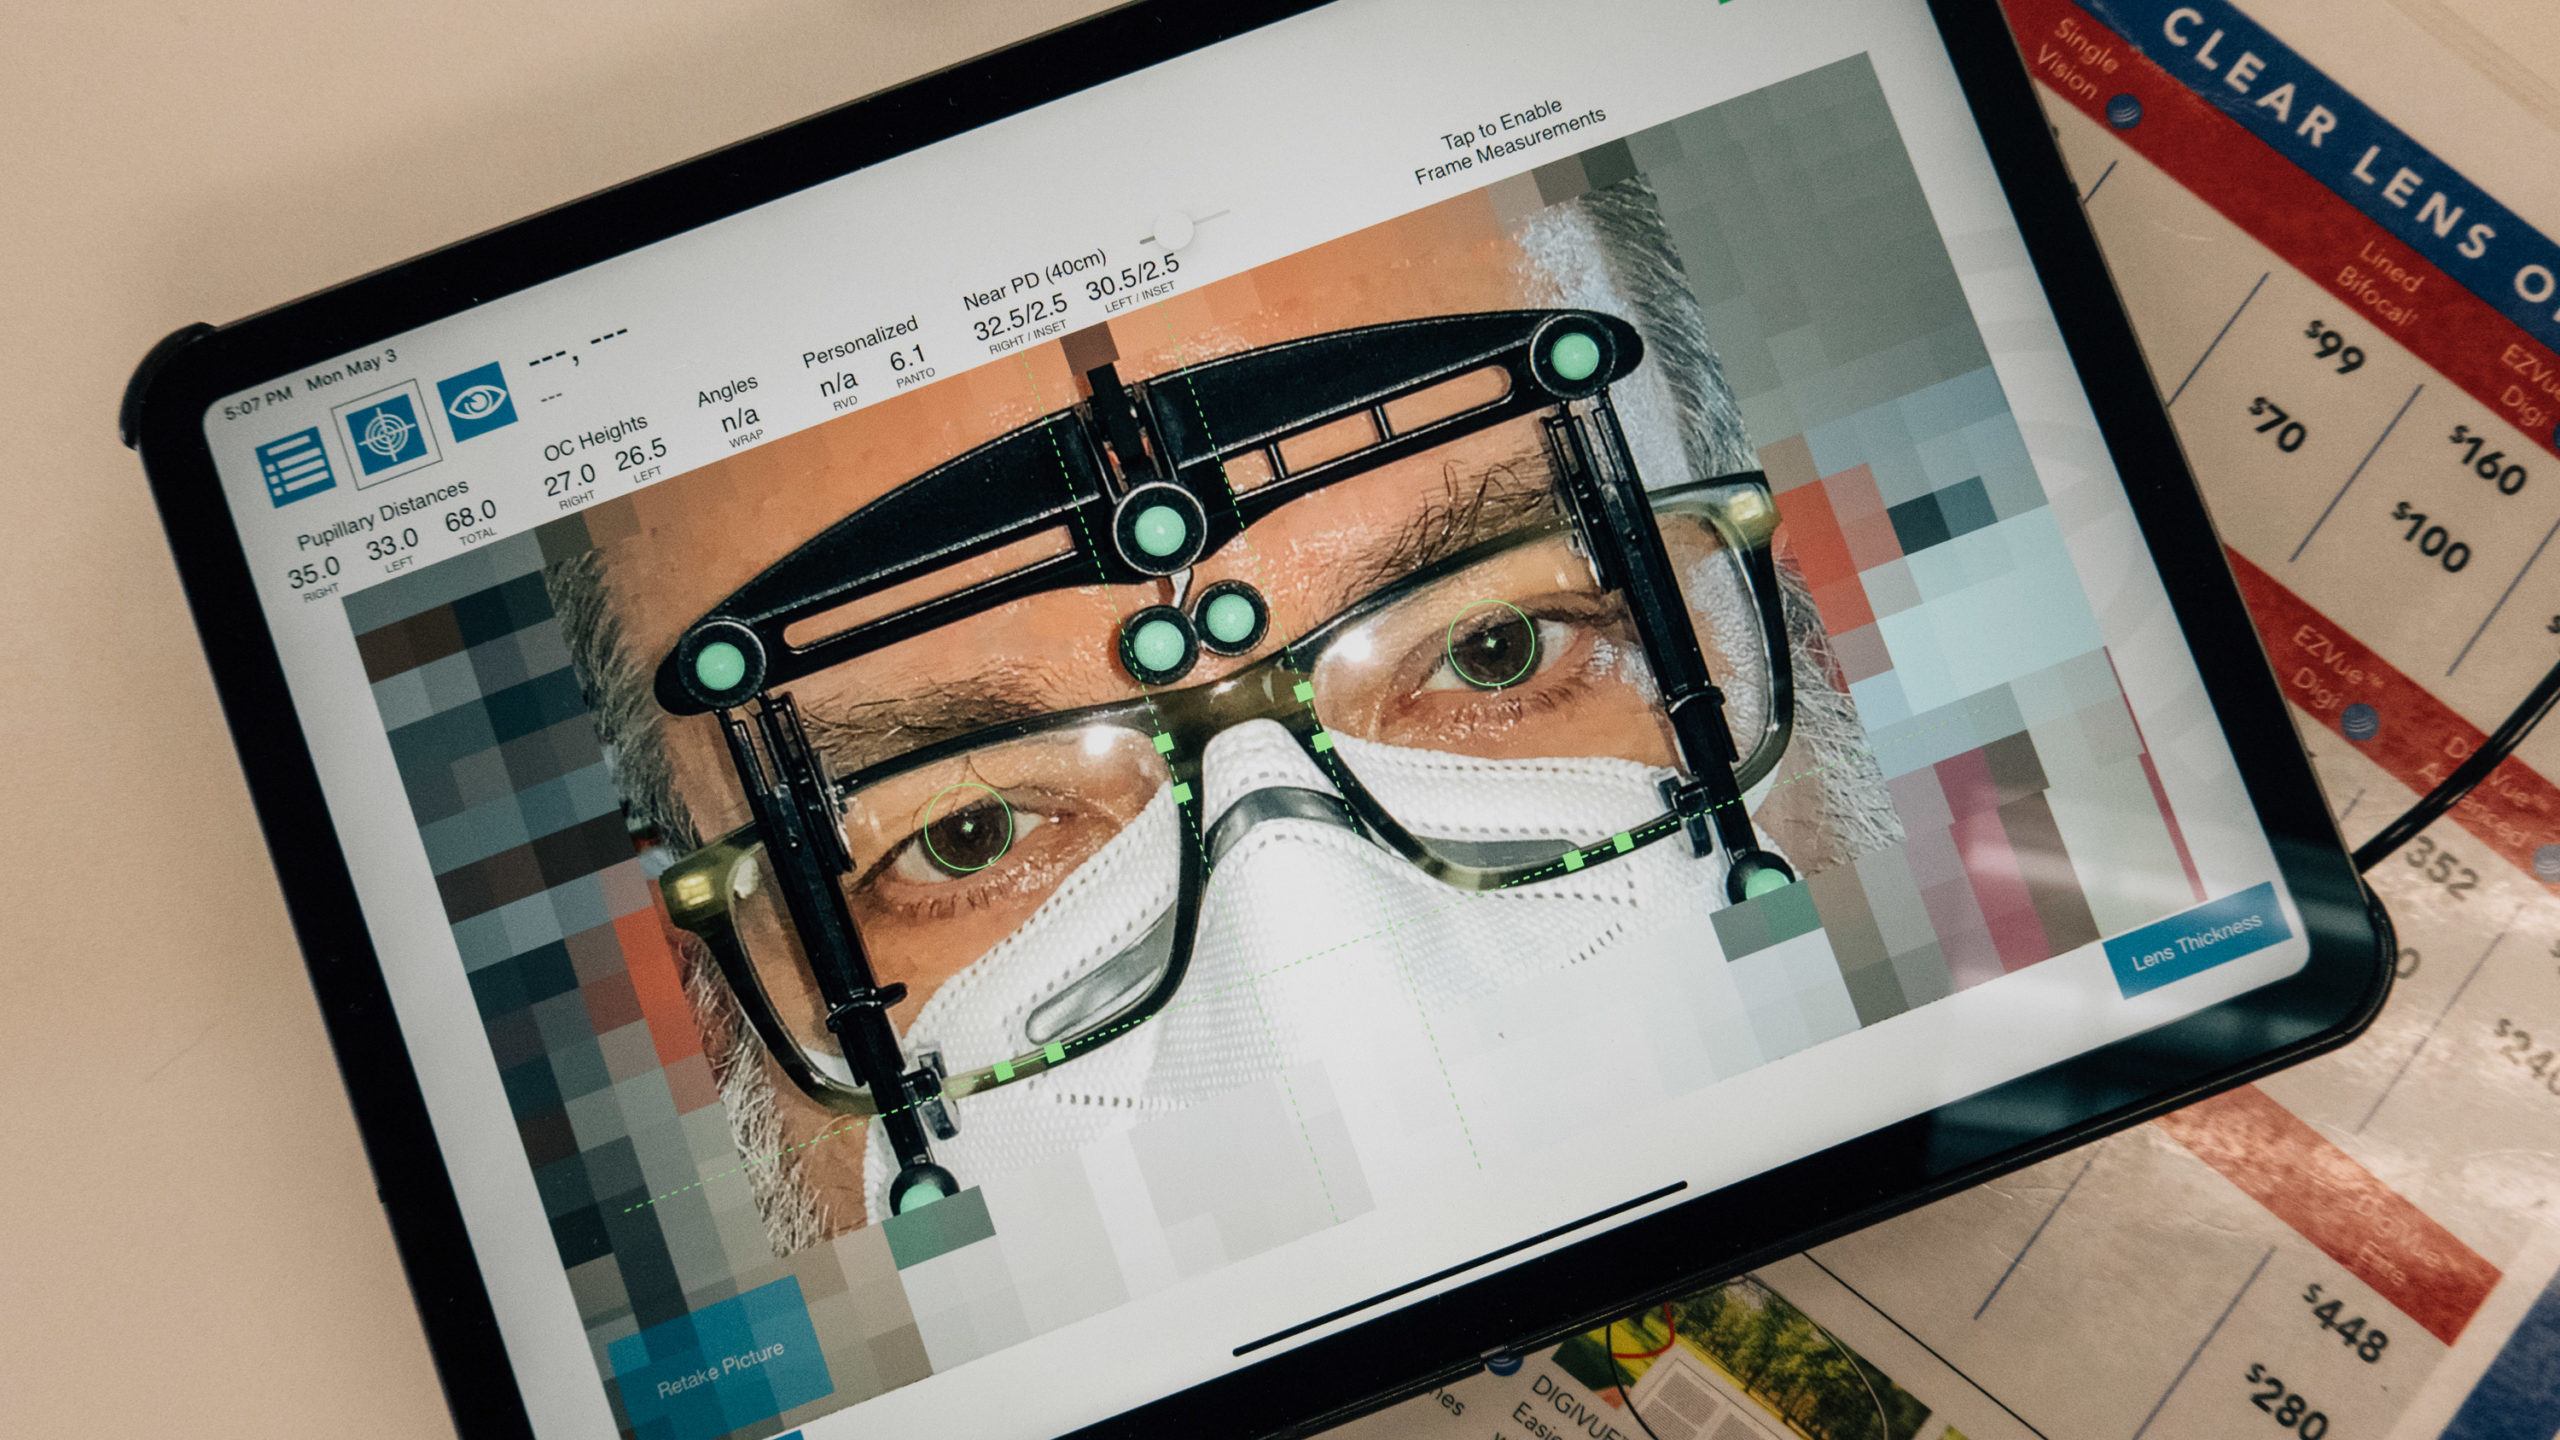 A tablet with an app determining pupillary distance for eyeglasses